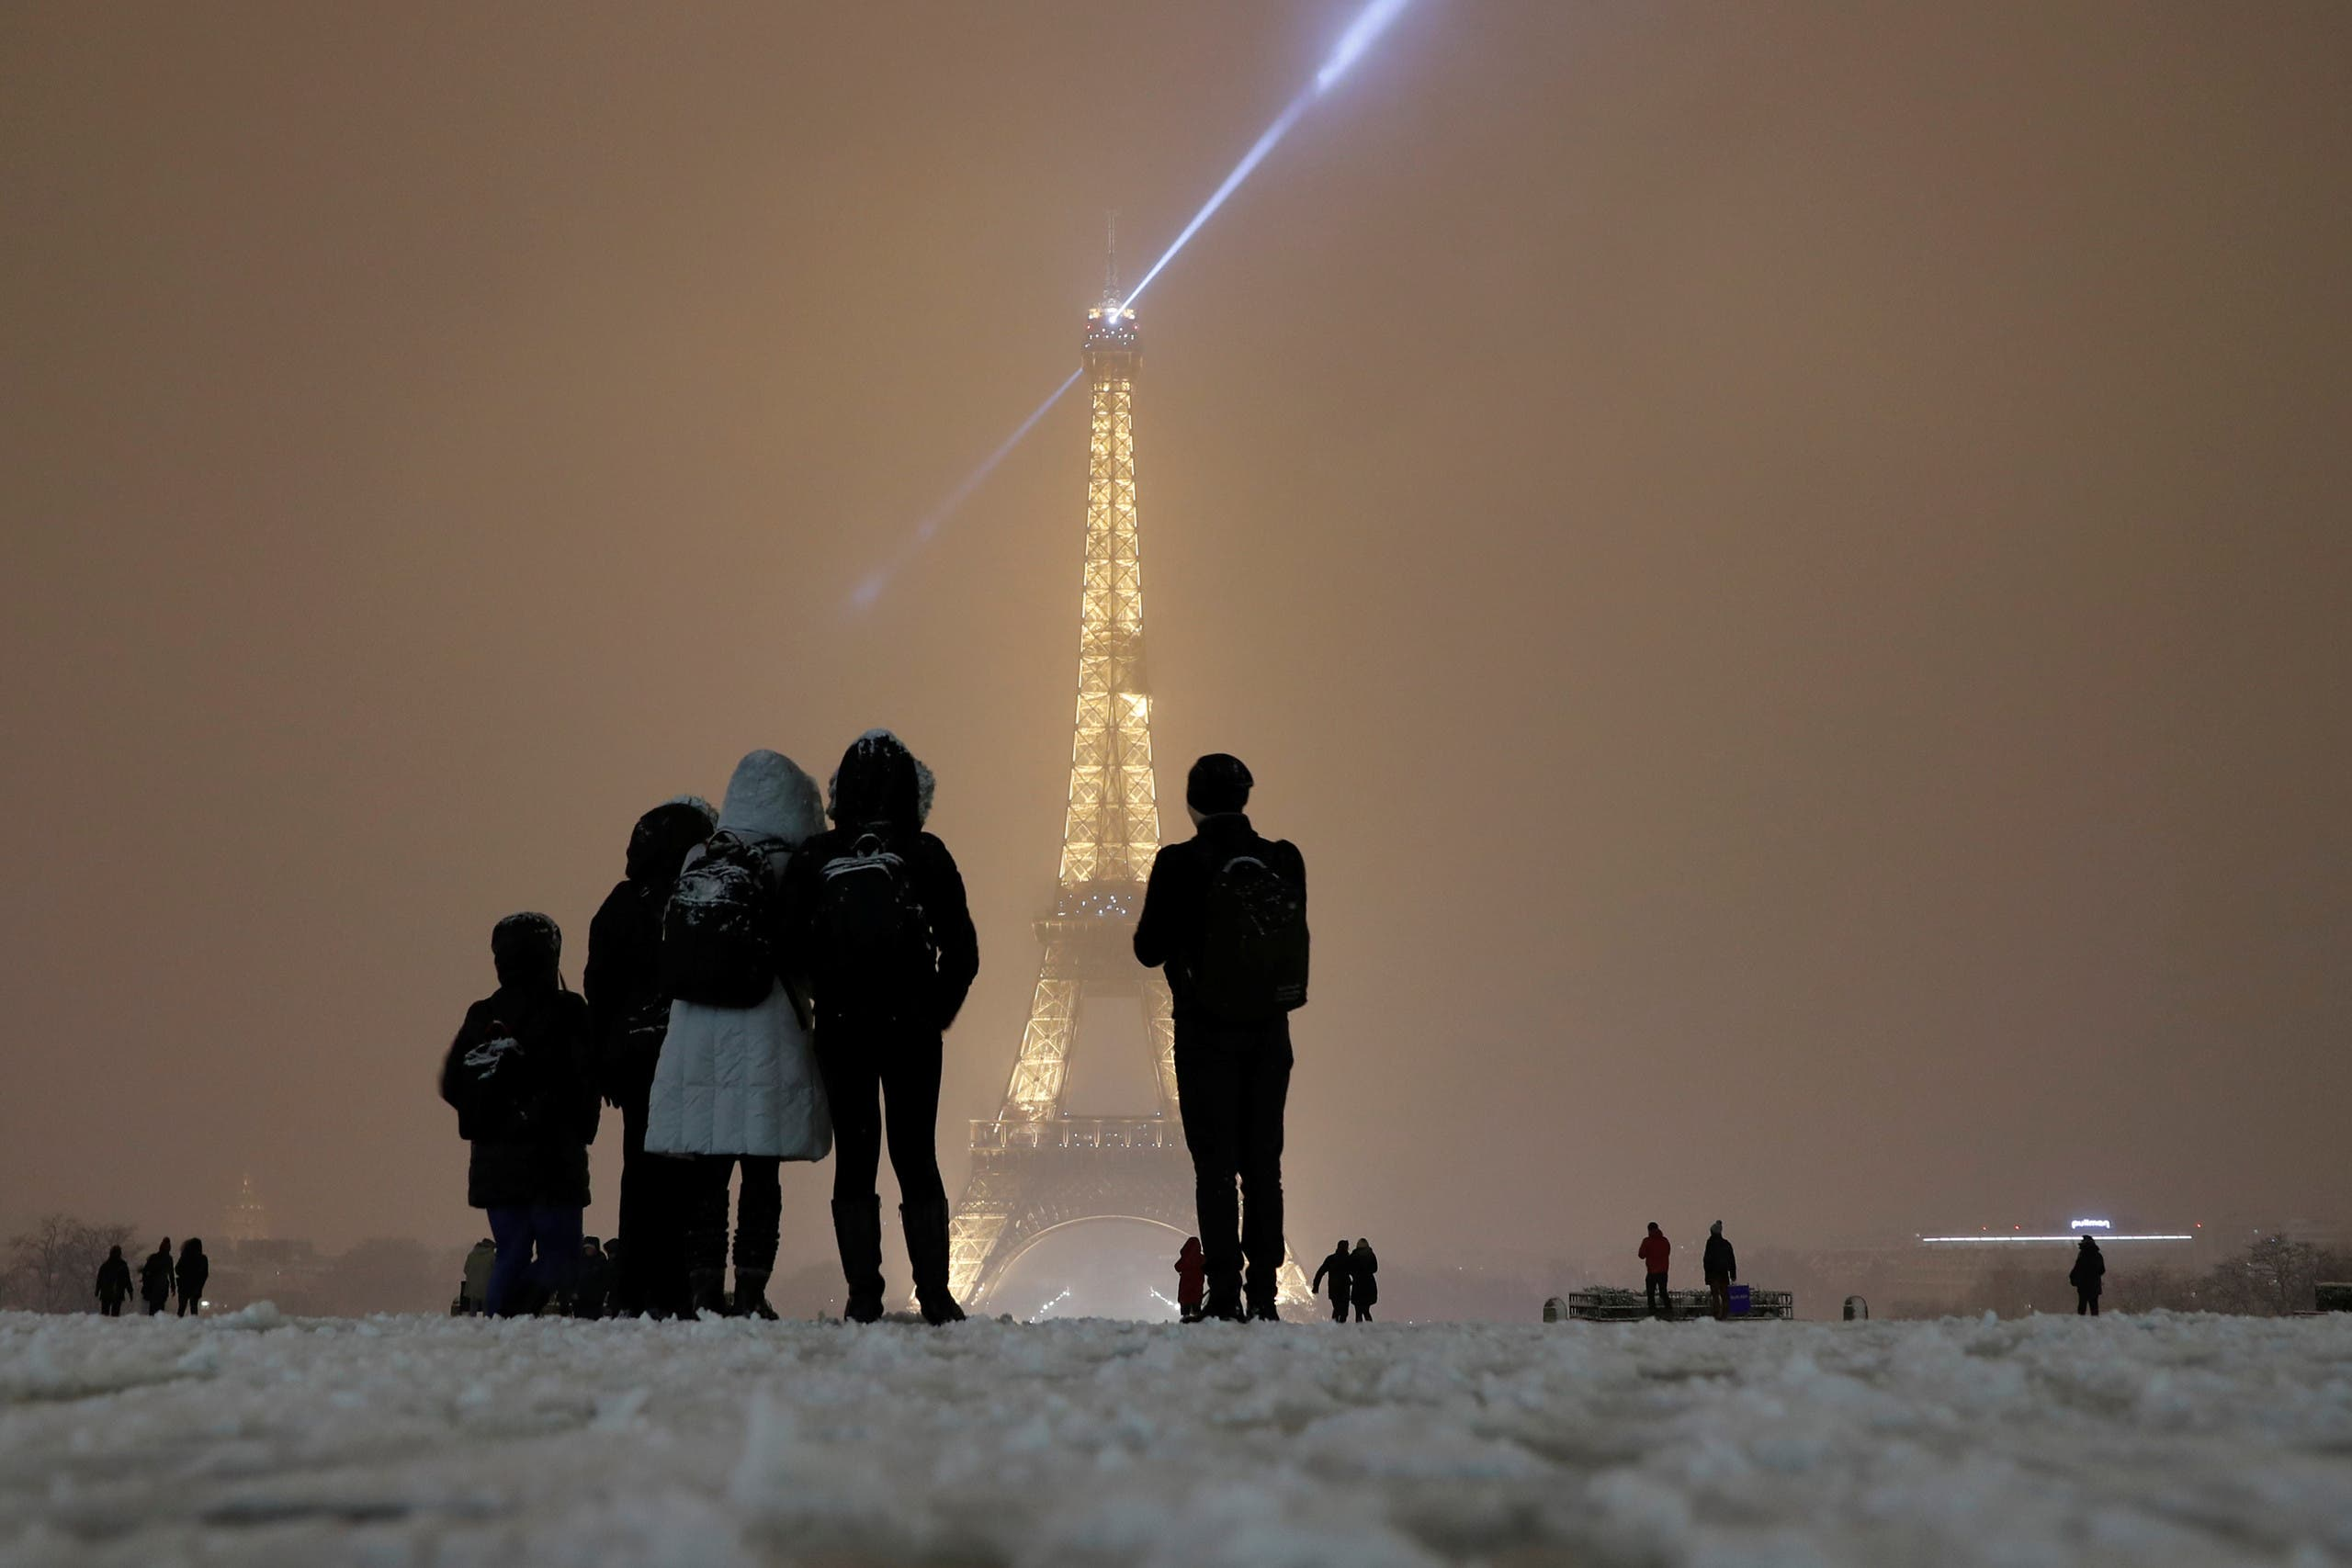 Tourists take pictures as they walk on a snow-covered path near the Eiffel Tower in Paris, as winter weather with snow and freezing temperatures arrive in France, February 6, 2018. Picture taken February 6, 2018. REUTERS